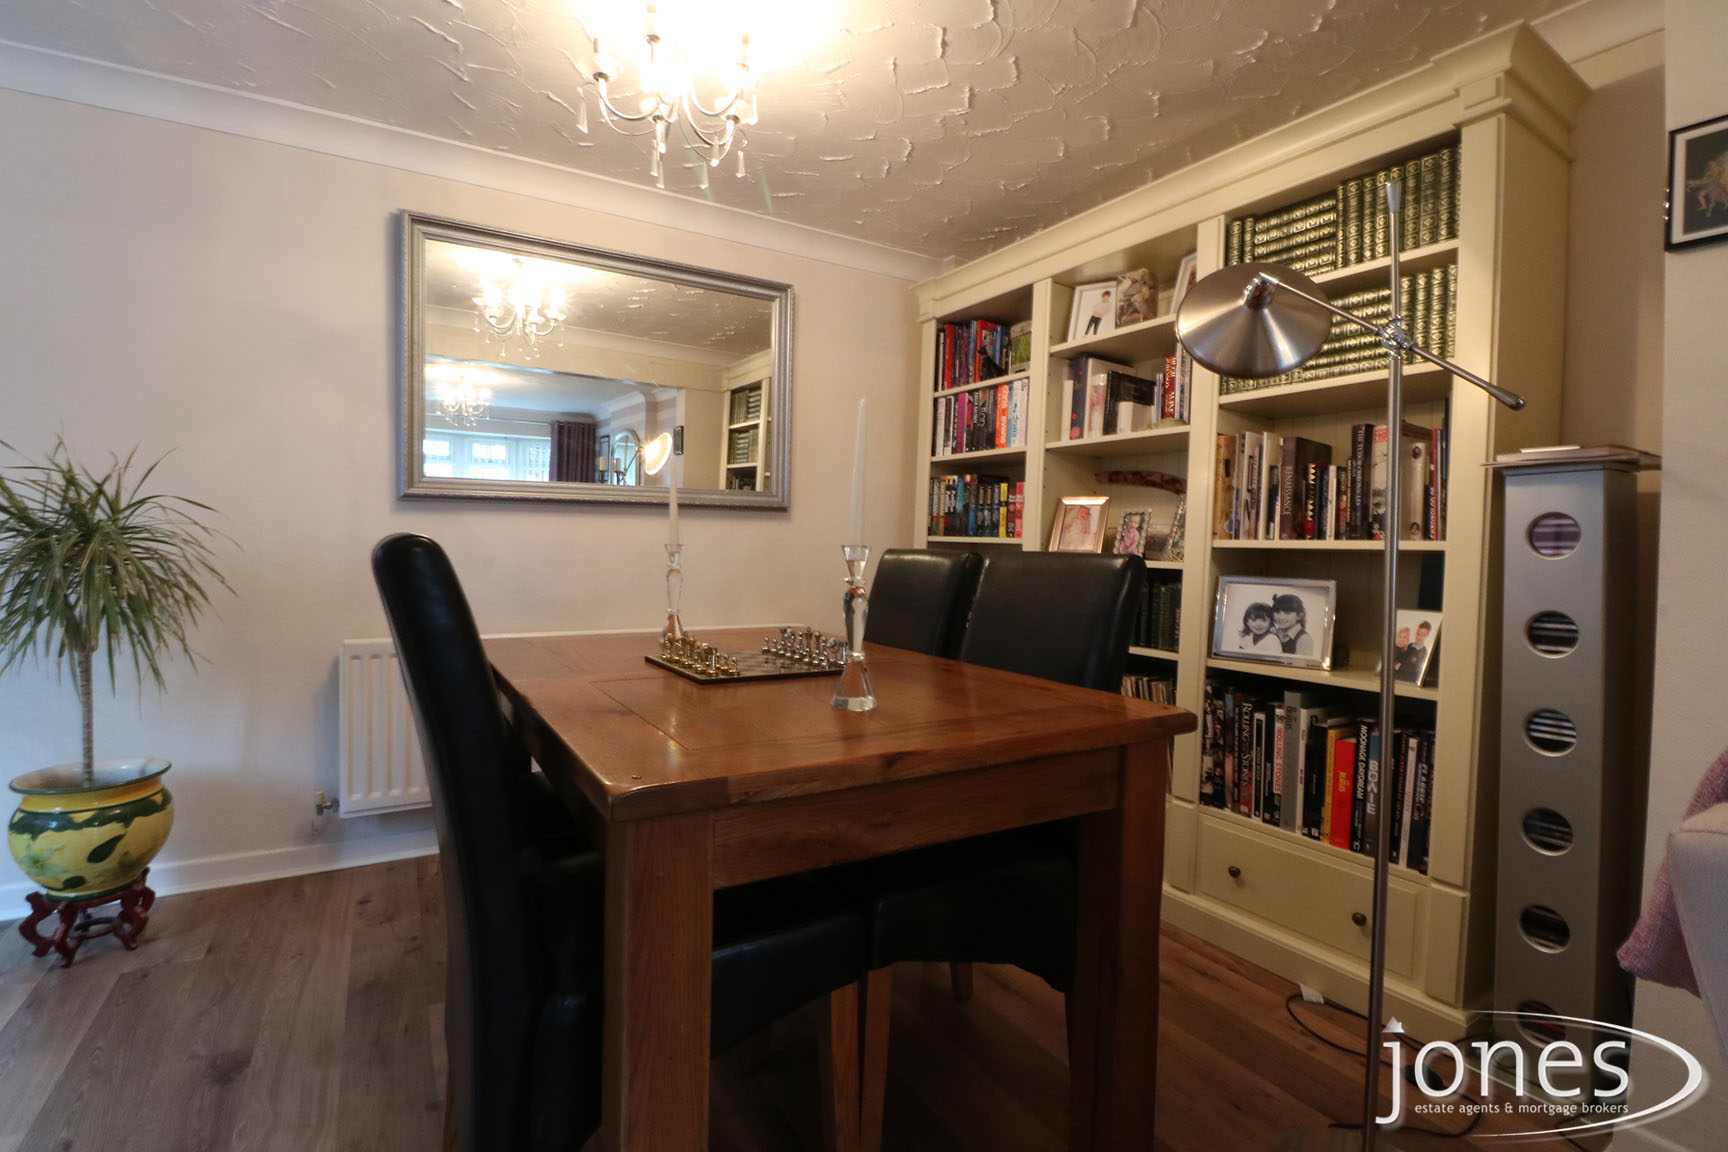 Home for Sale Let - Photo 03 Surbiton Road, Fairfield, Stockton on Tees, TS19 7SA